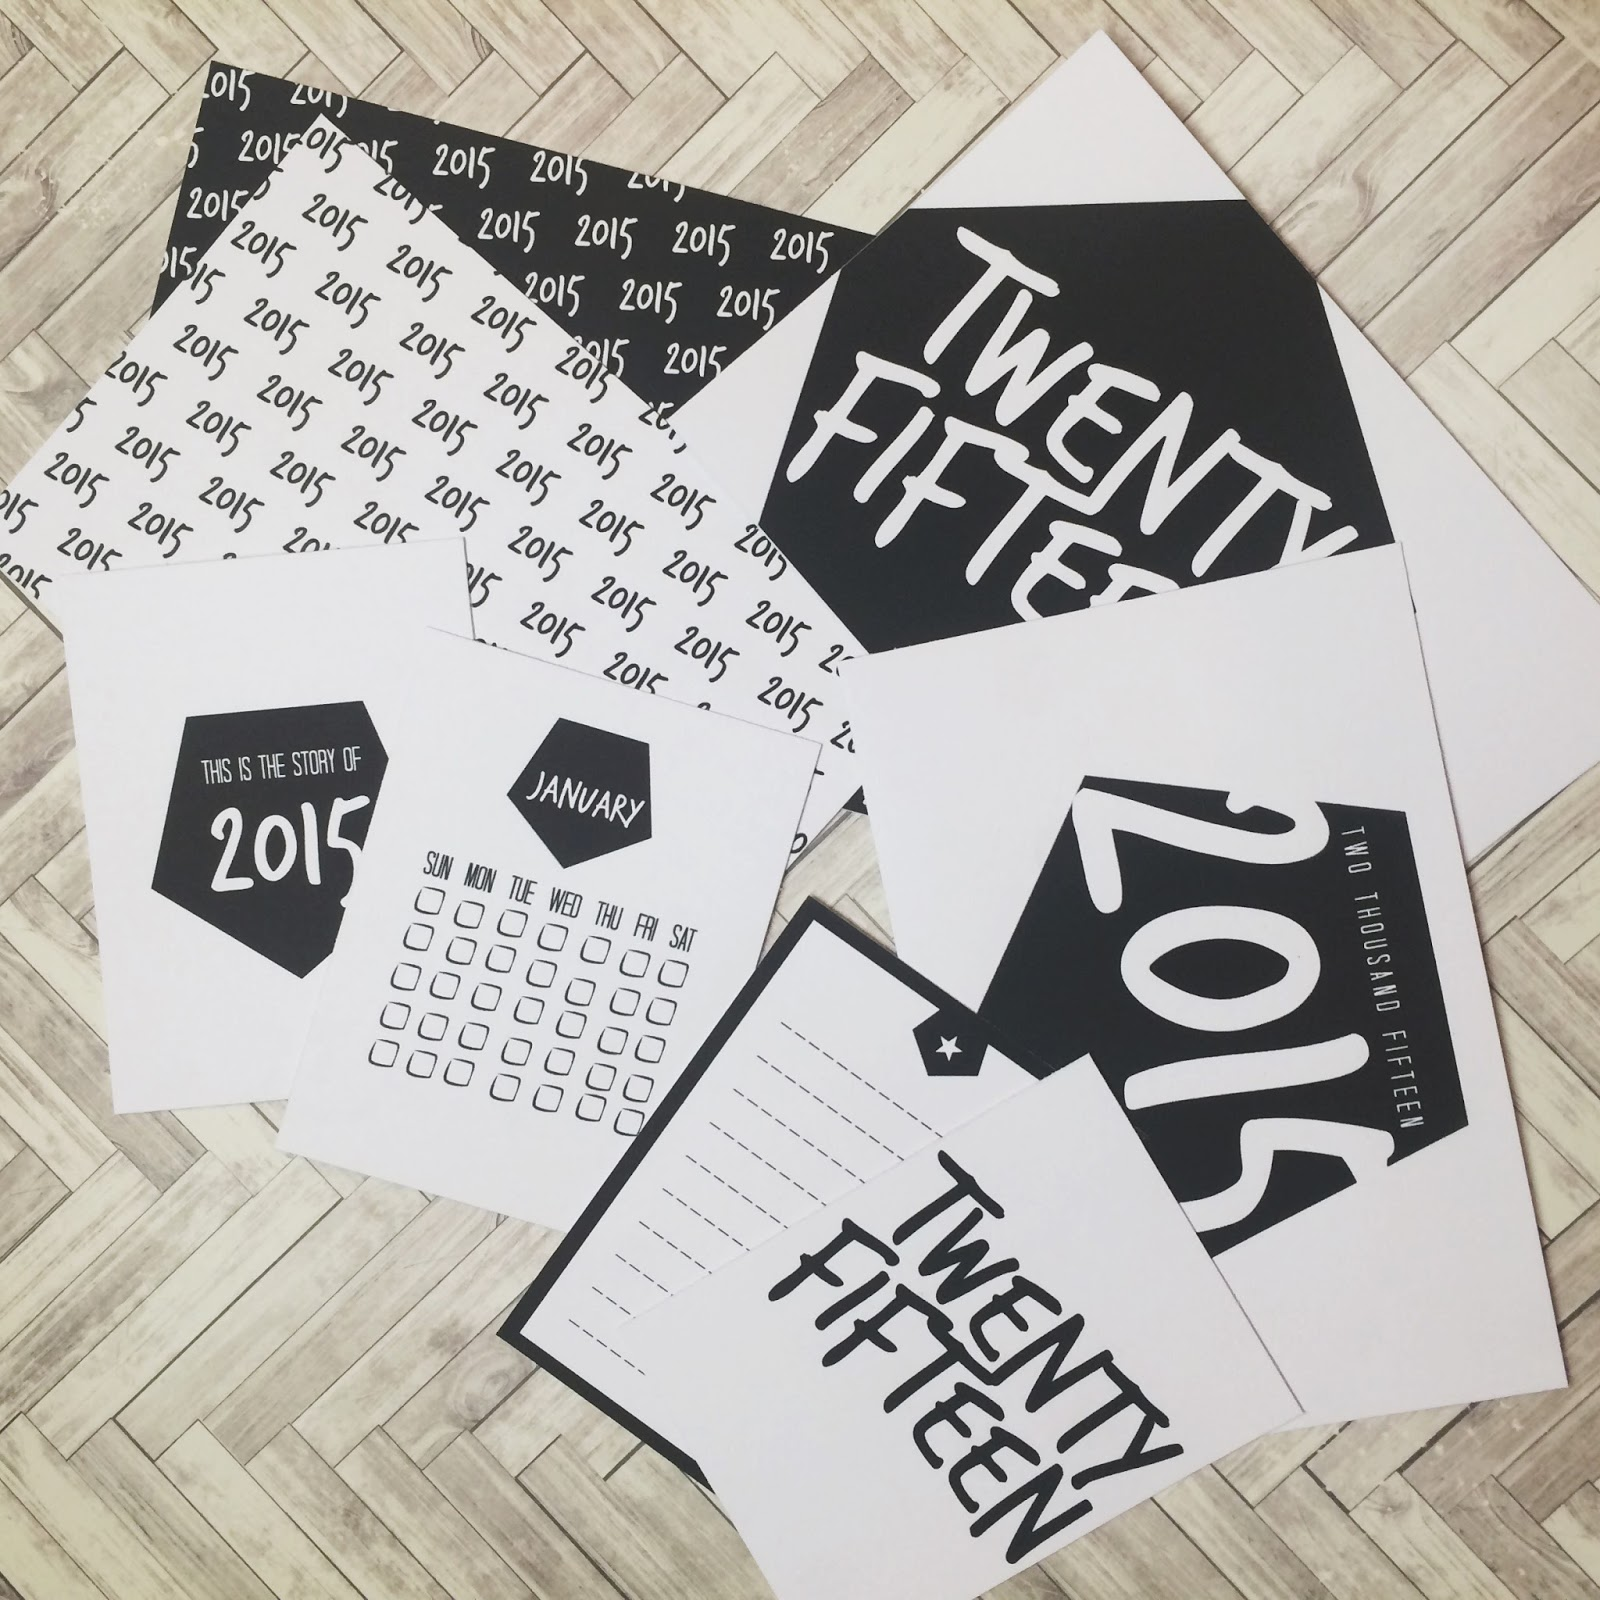 Design your own t shirt free download - Download The Free Pdf Here Remember To Play Nice These Are For Personal Use So Don T Resell Or Claim Them As Your Own Additionally Pin This Post And